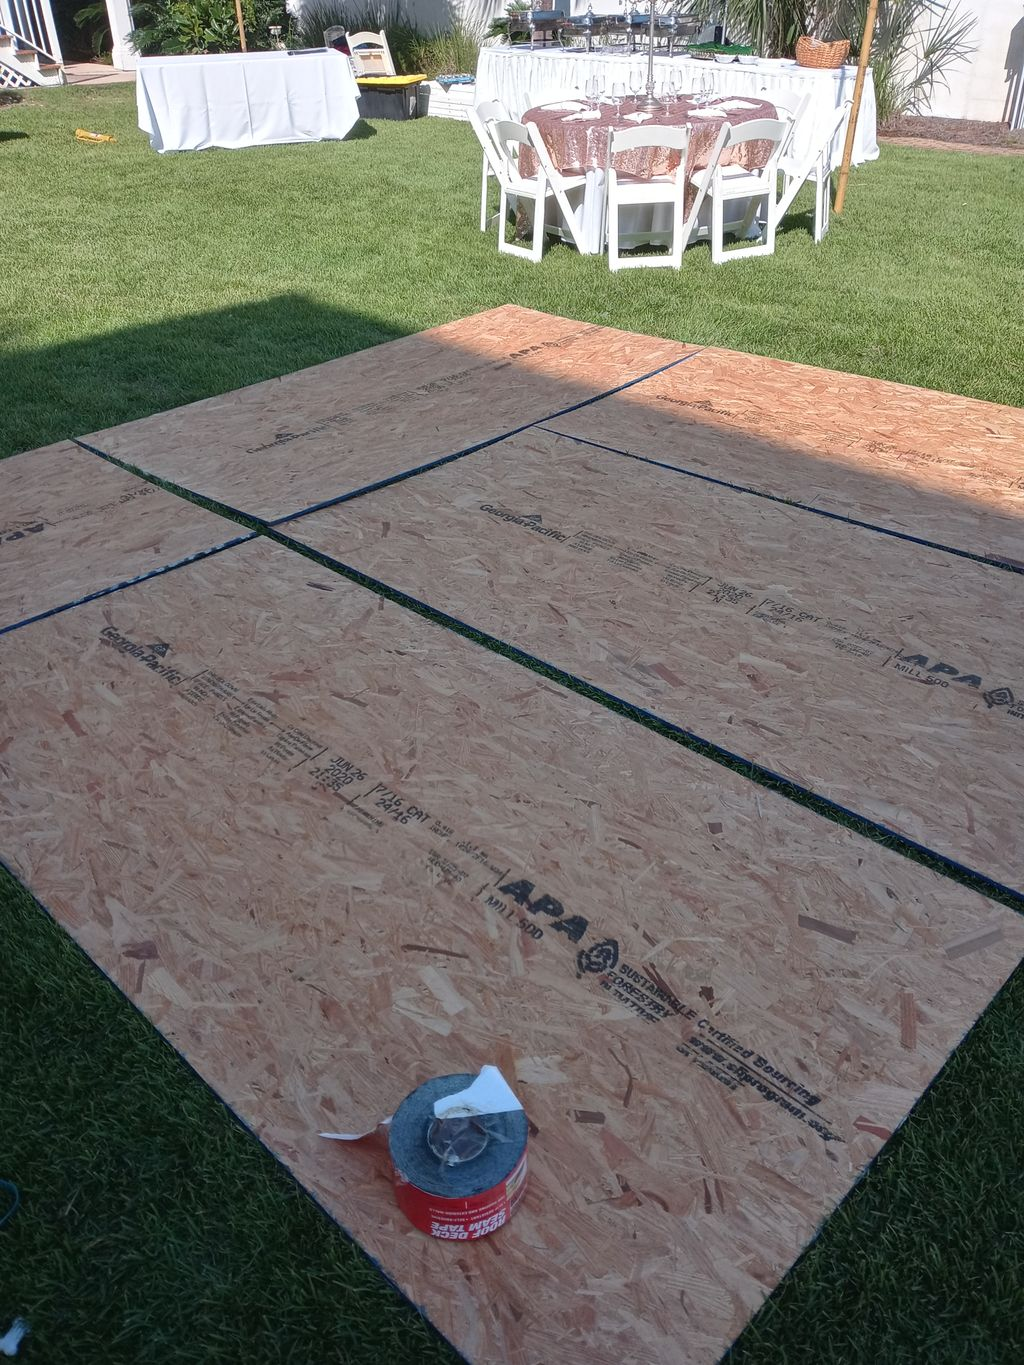 Built my own dance 12 foot dance floor- Let me build yours